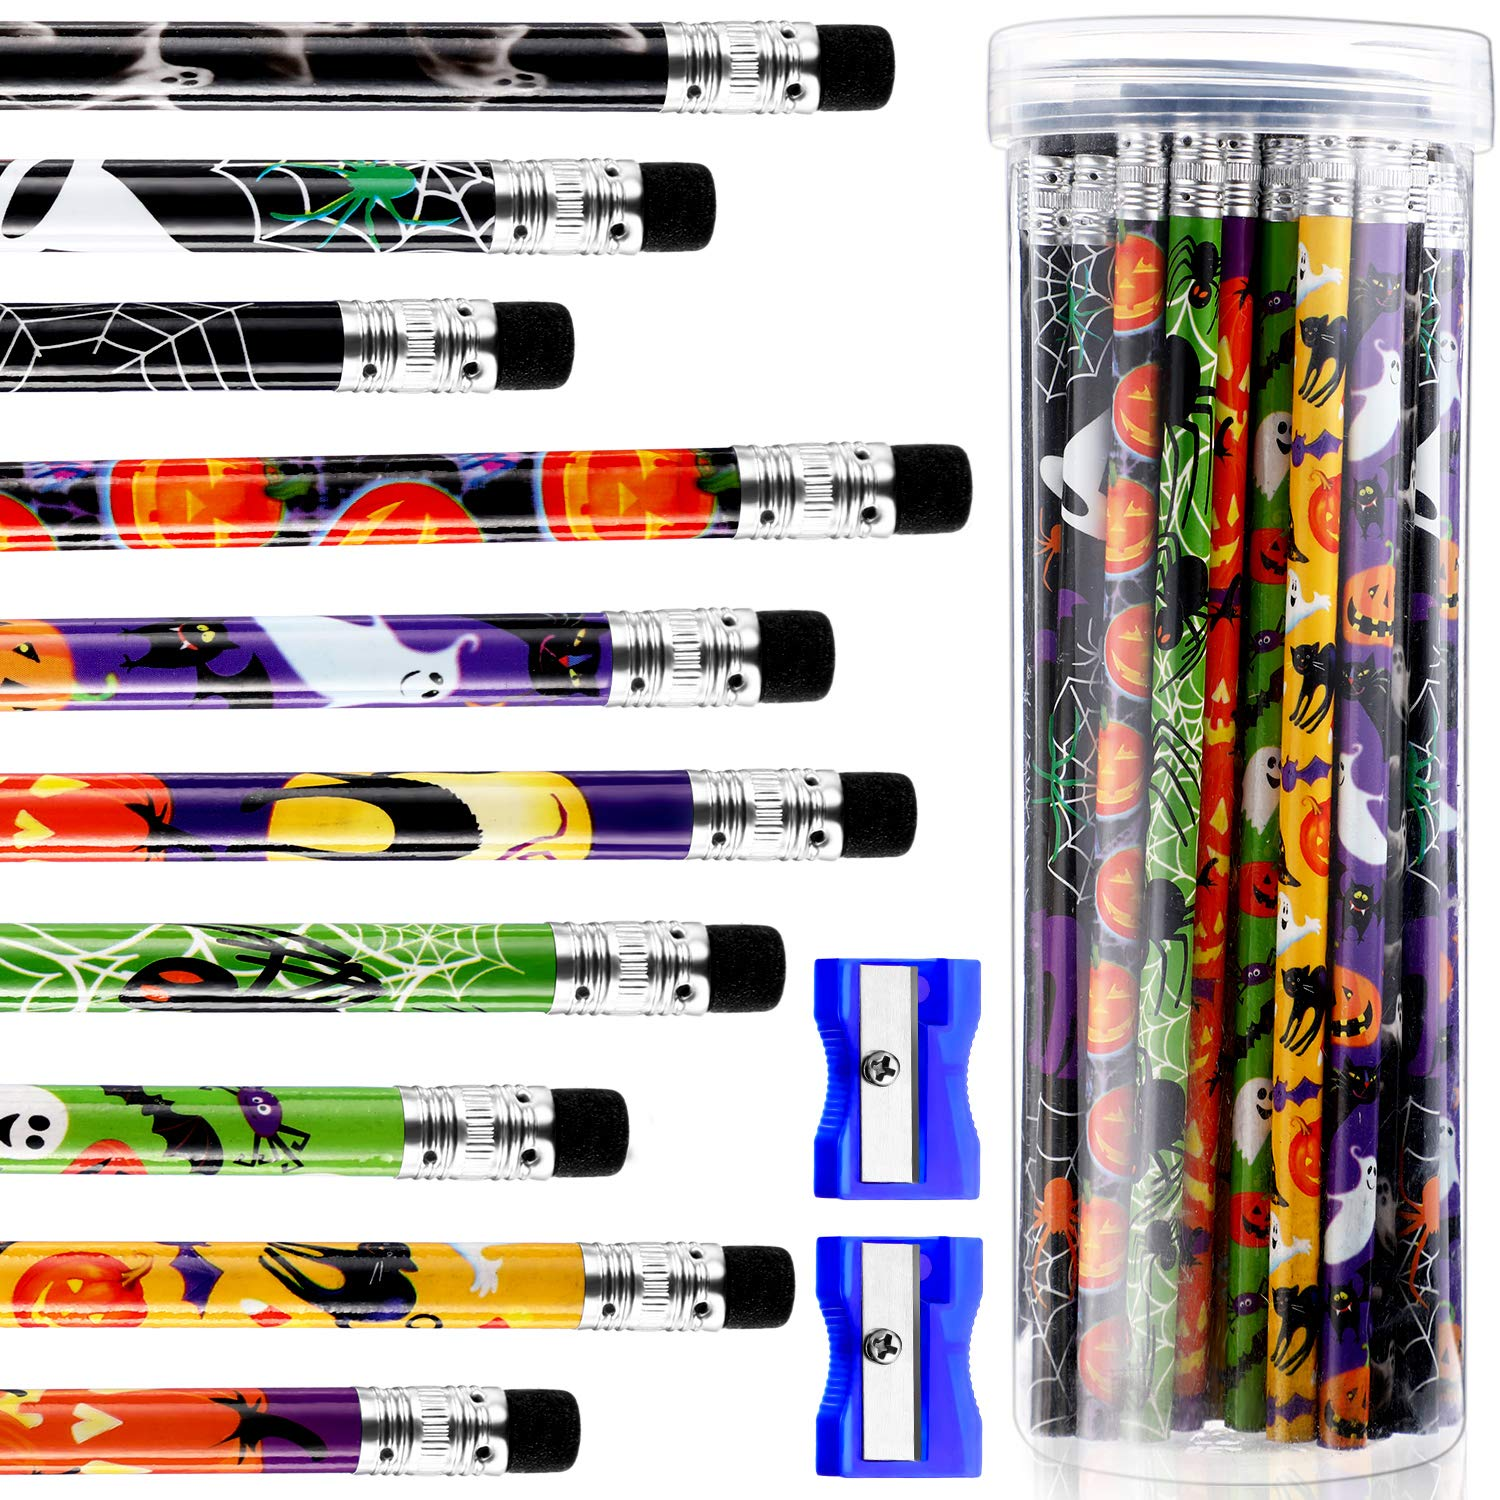 50 Pieces Halloween Pencils Assorted Colorful Pencils Wooden Pencils with Eraser, 2 Pieces Pencil Sharpeners and Plastic Bottle for Students Halloween Gift by Outus